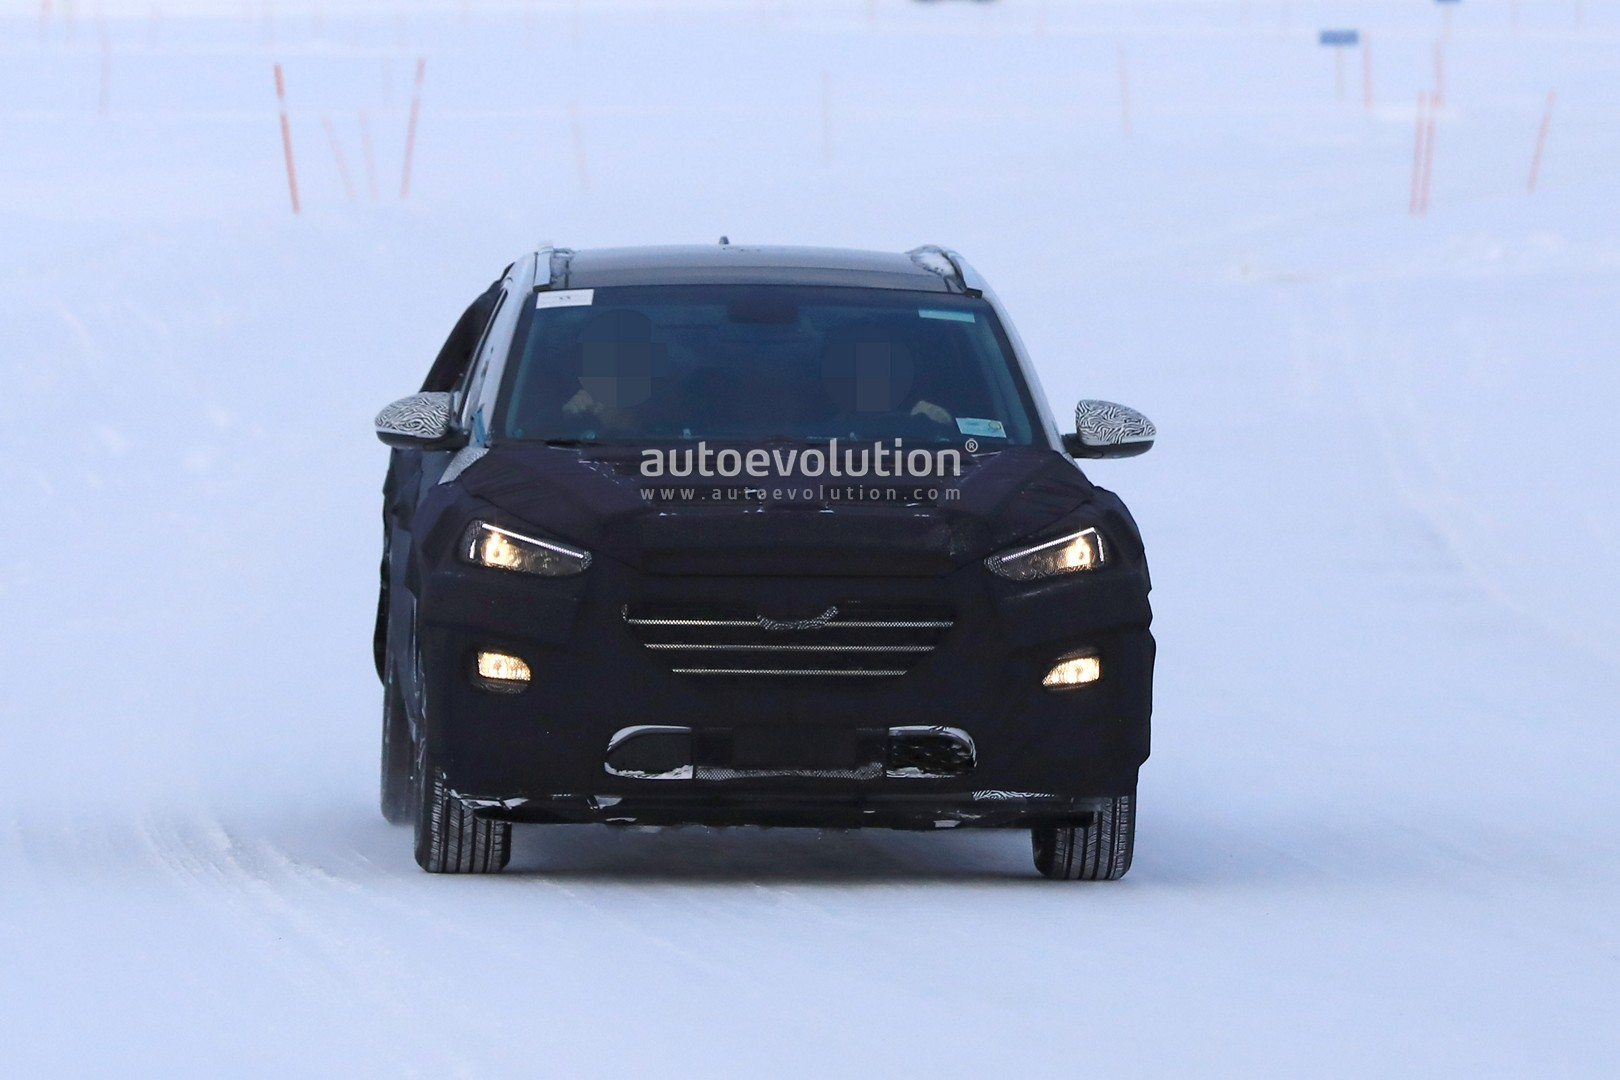 Hyundai Tucson N Confirmed, Likely To Go Official In 2019